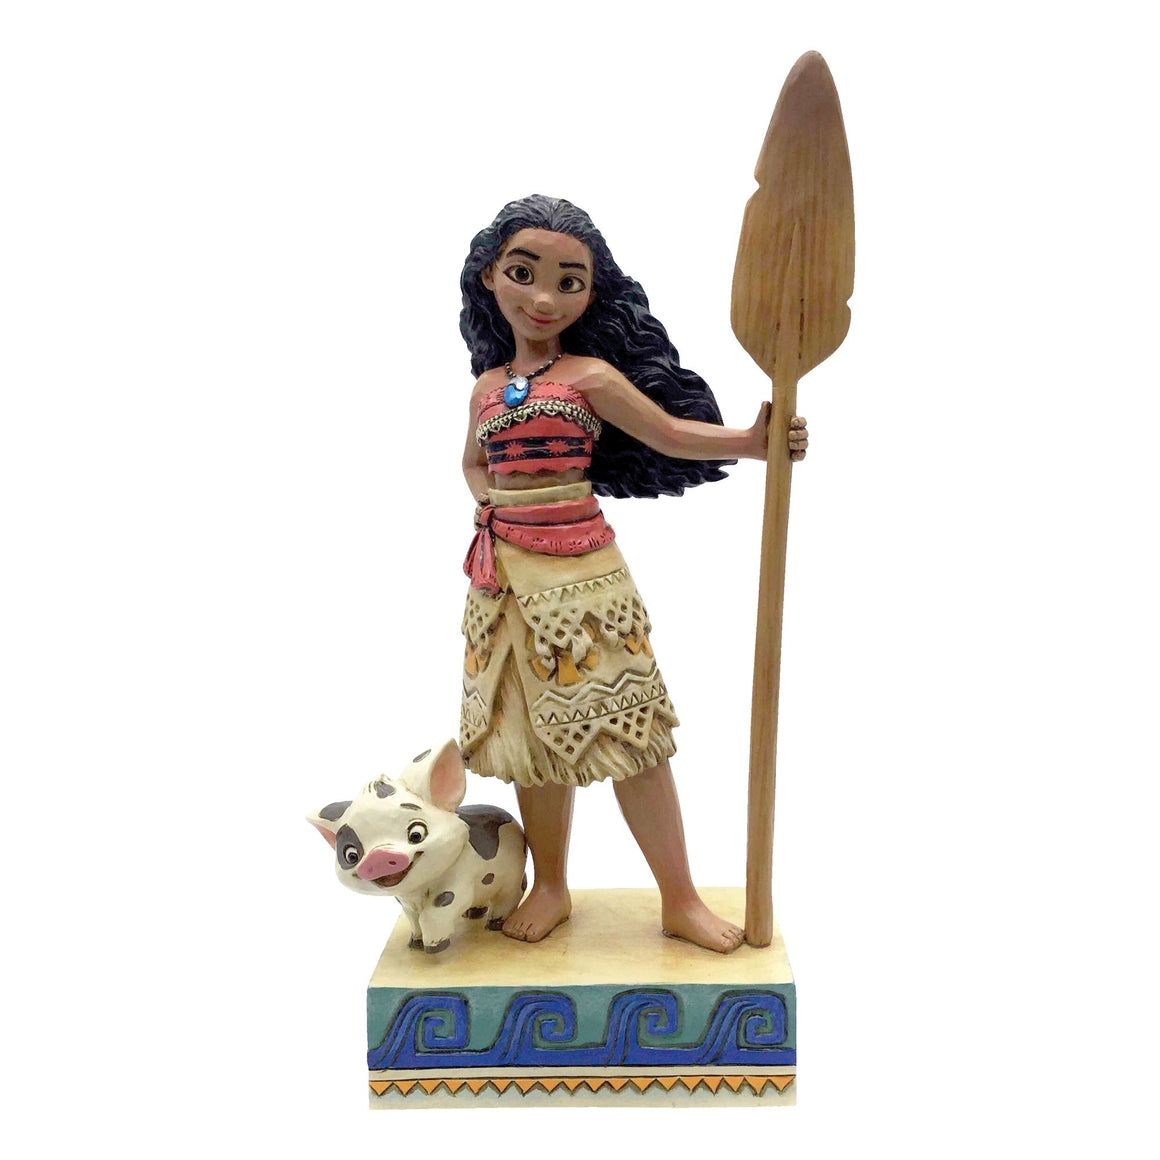 Find Your Own Way - Moana Figurine - Disney Traditions by Jim Shore